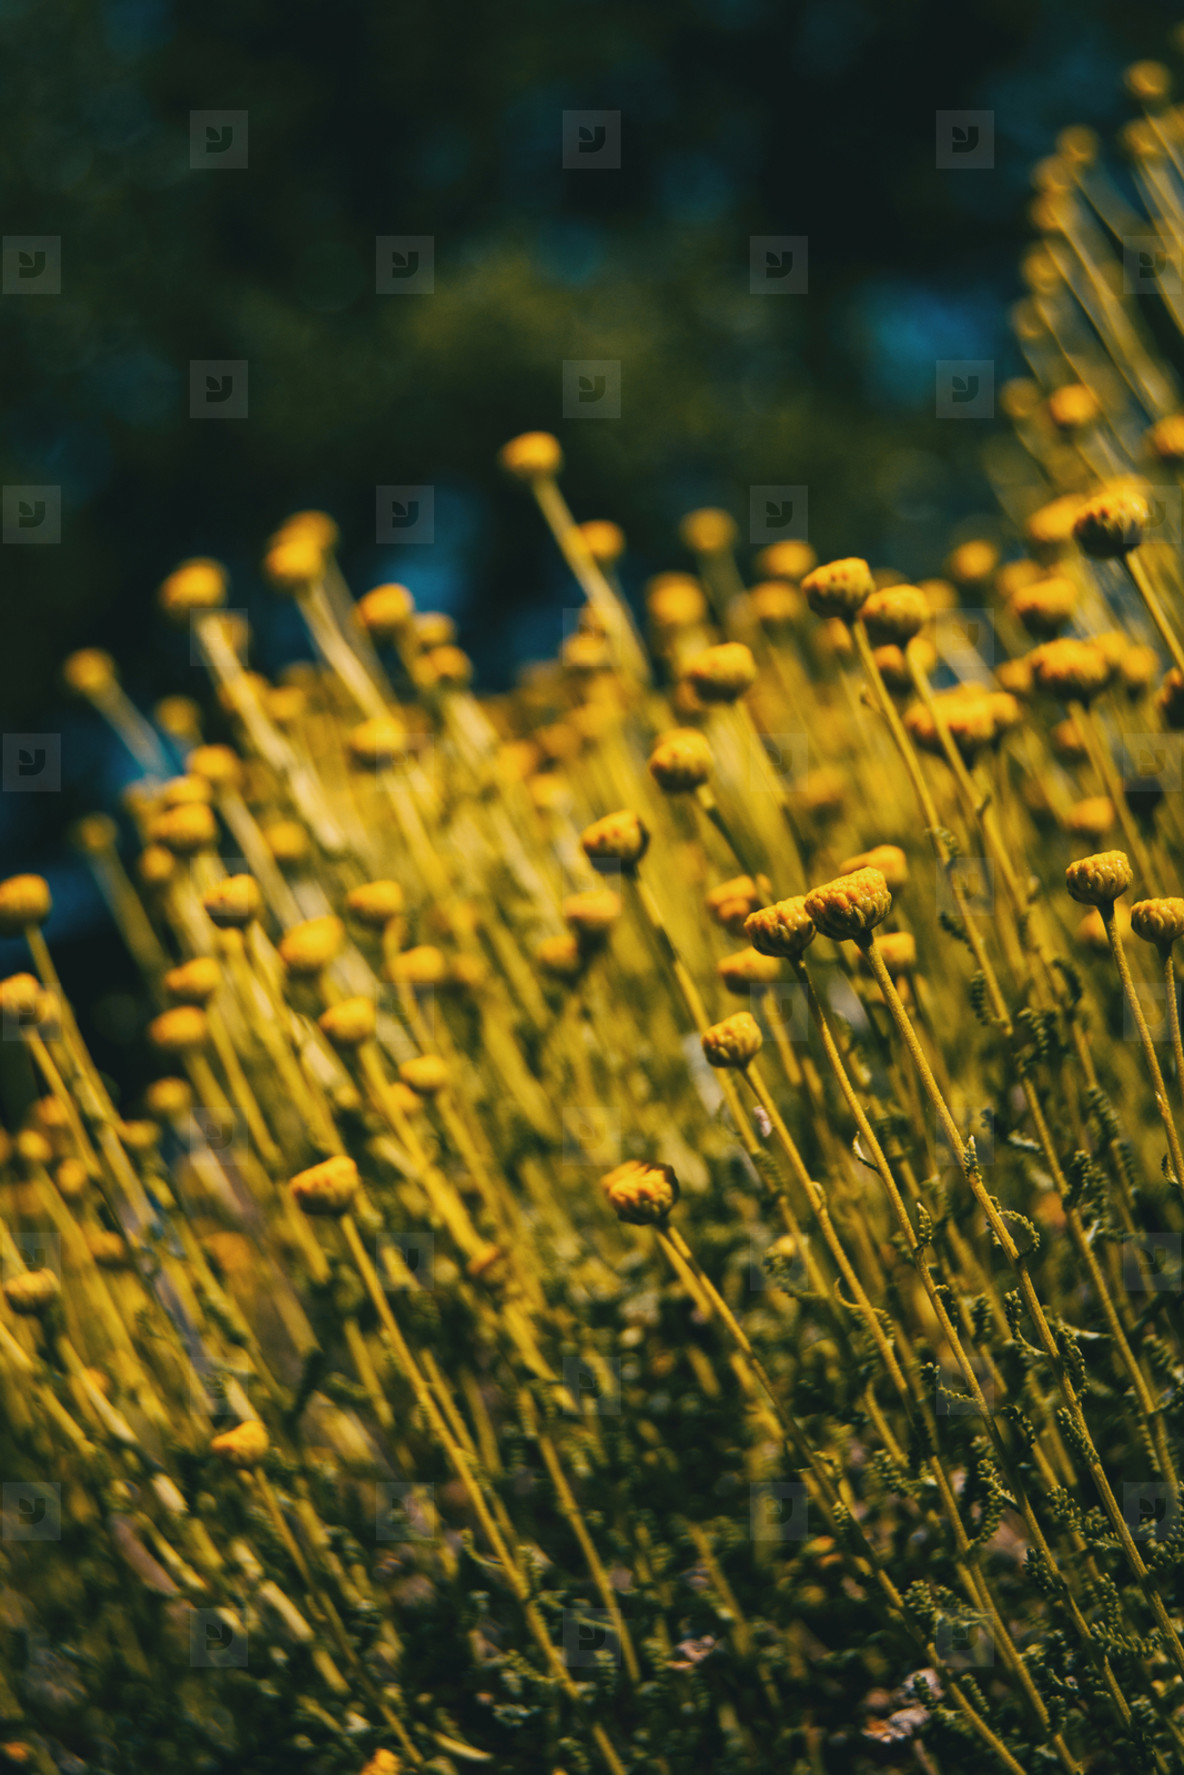 field full of yellow colored santolina in a field